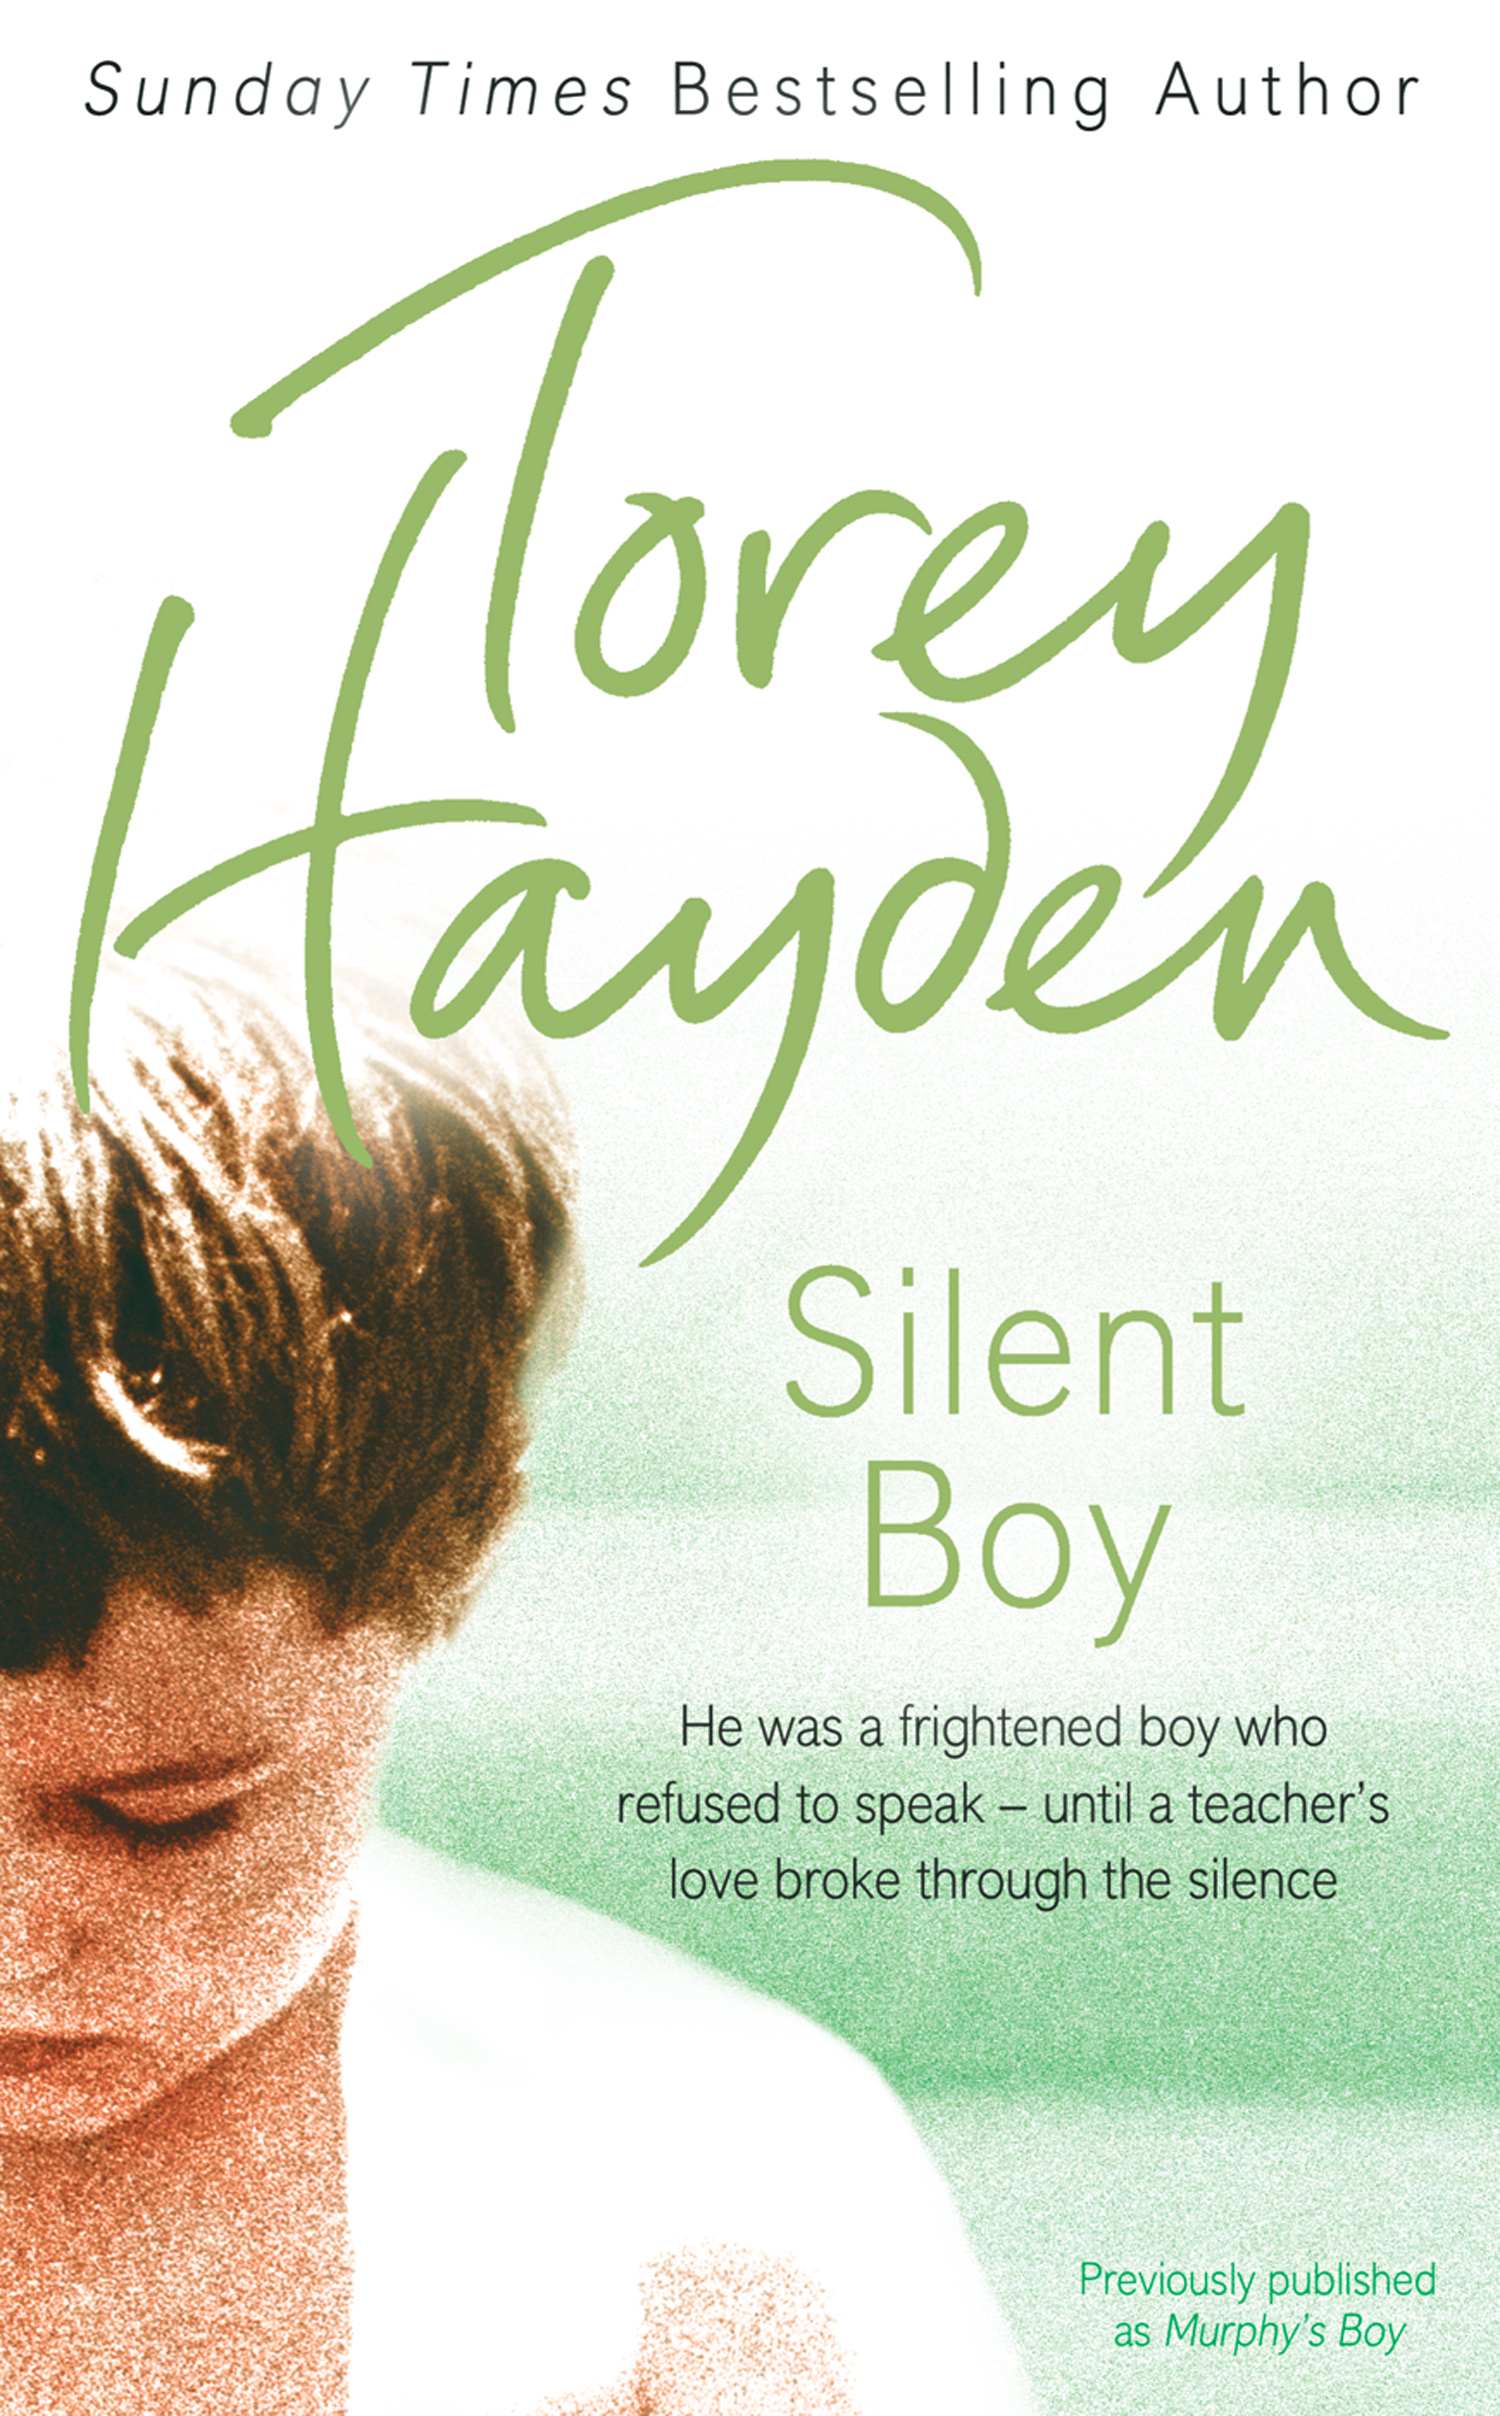 Silent Boy: He was a frightened boy who refused to speak – until a teacher's love broke through the silence